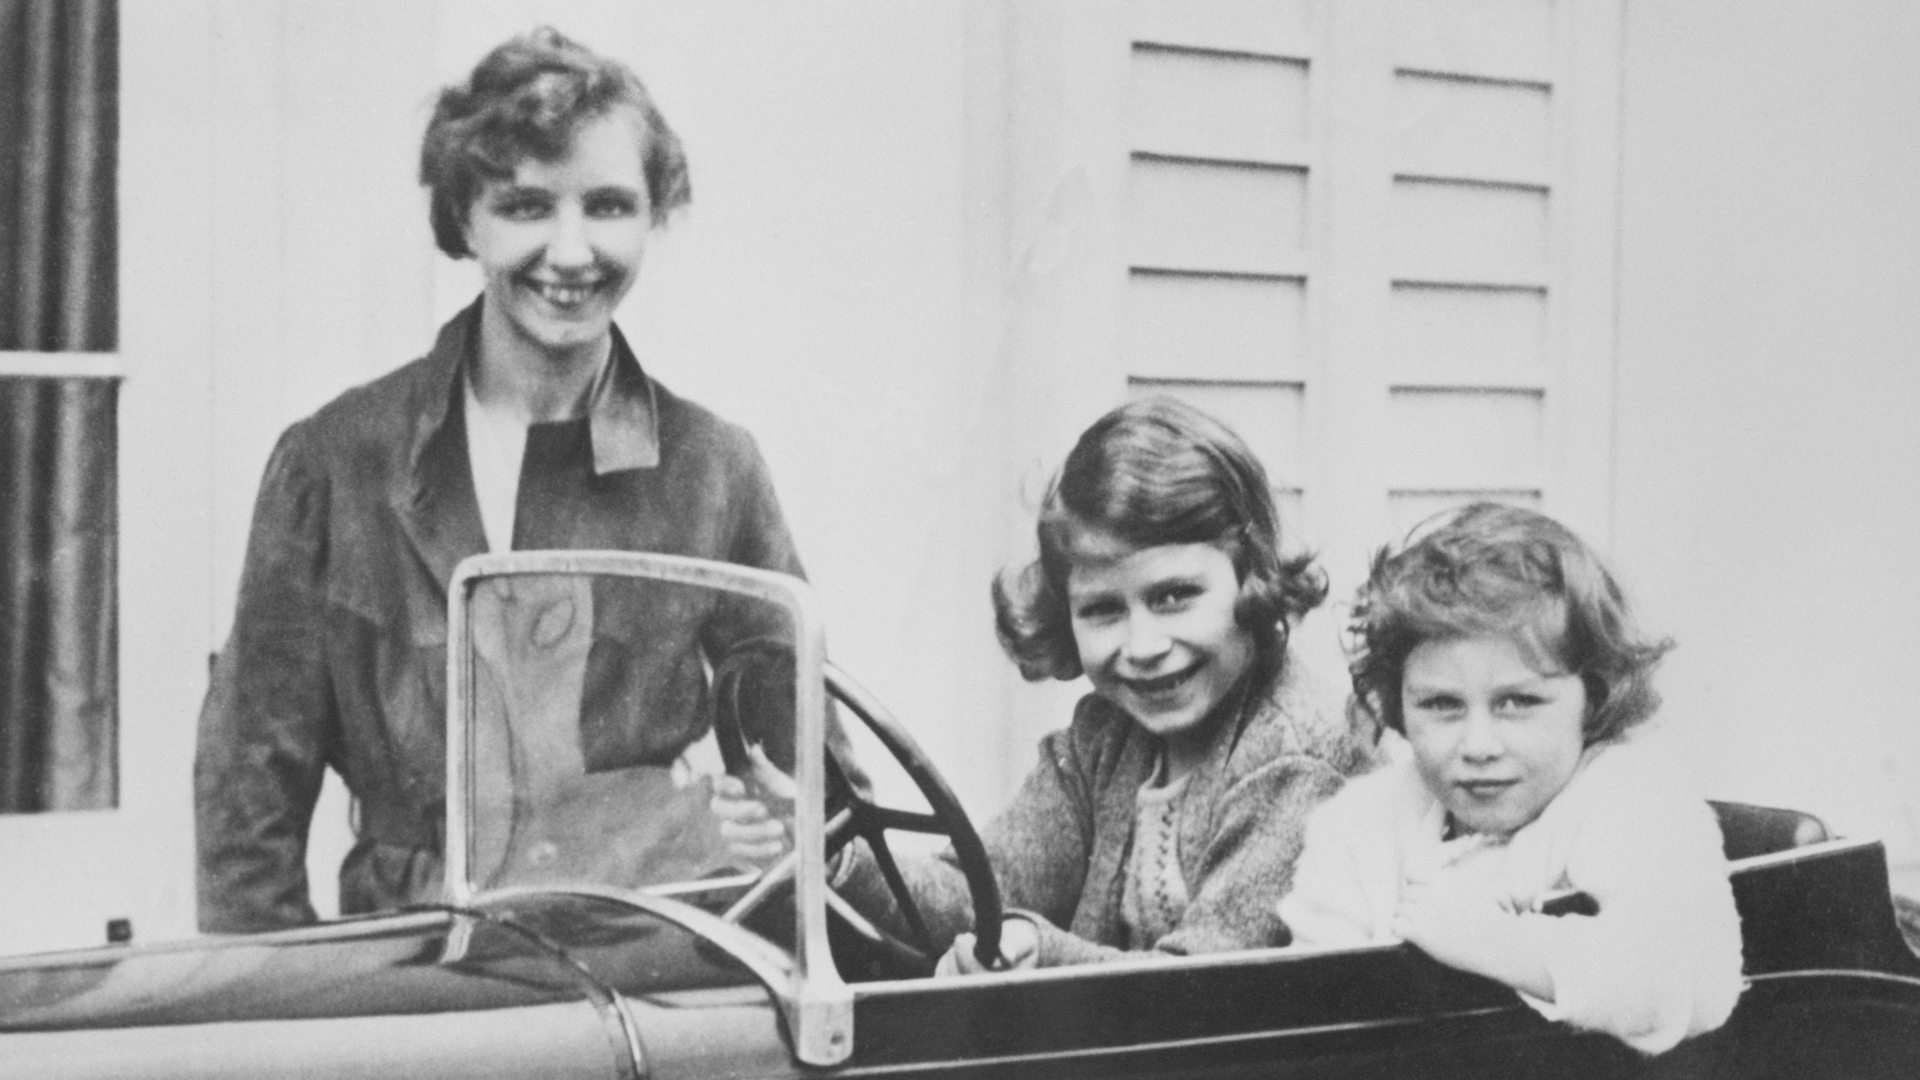 Princess Elizabeth (center) and her younger sister Princess Margaret of Great Britain play in a miniature automobile while their governess, Marion Crawford, keeps an eye on them. Elizabeth will grow up to become Queen Elizabeth II. (Credit: Bettmann Archive/Getty Images)